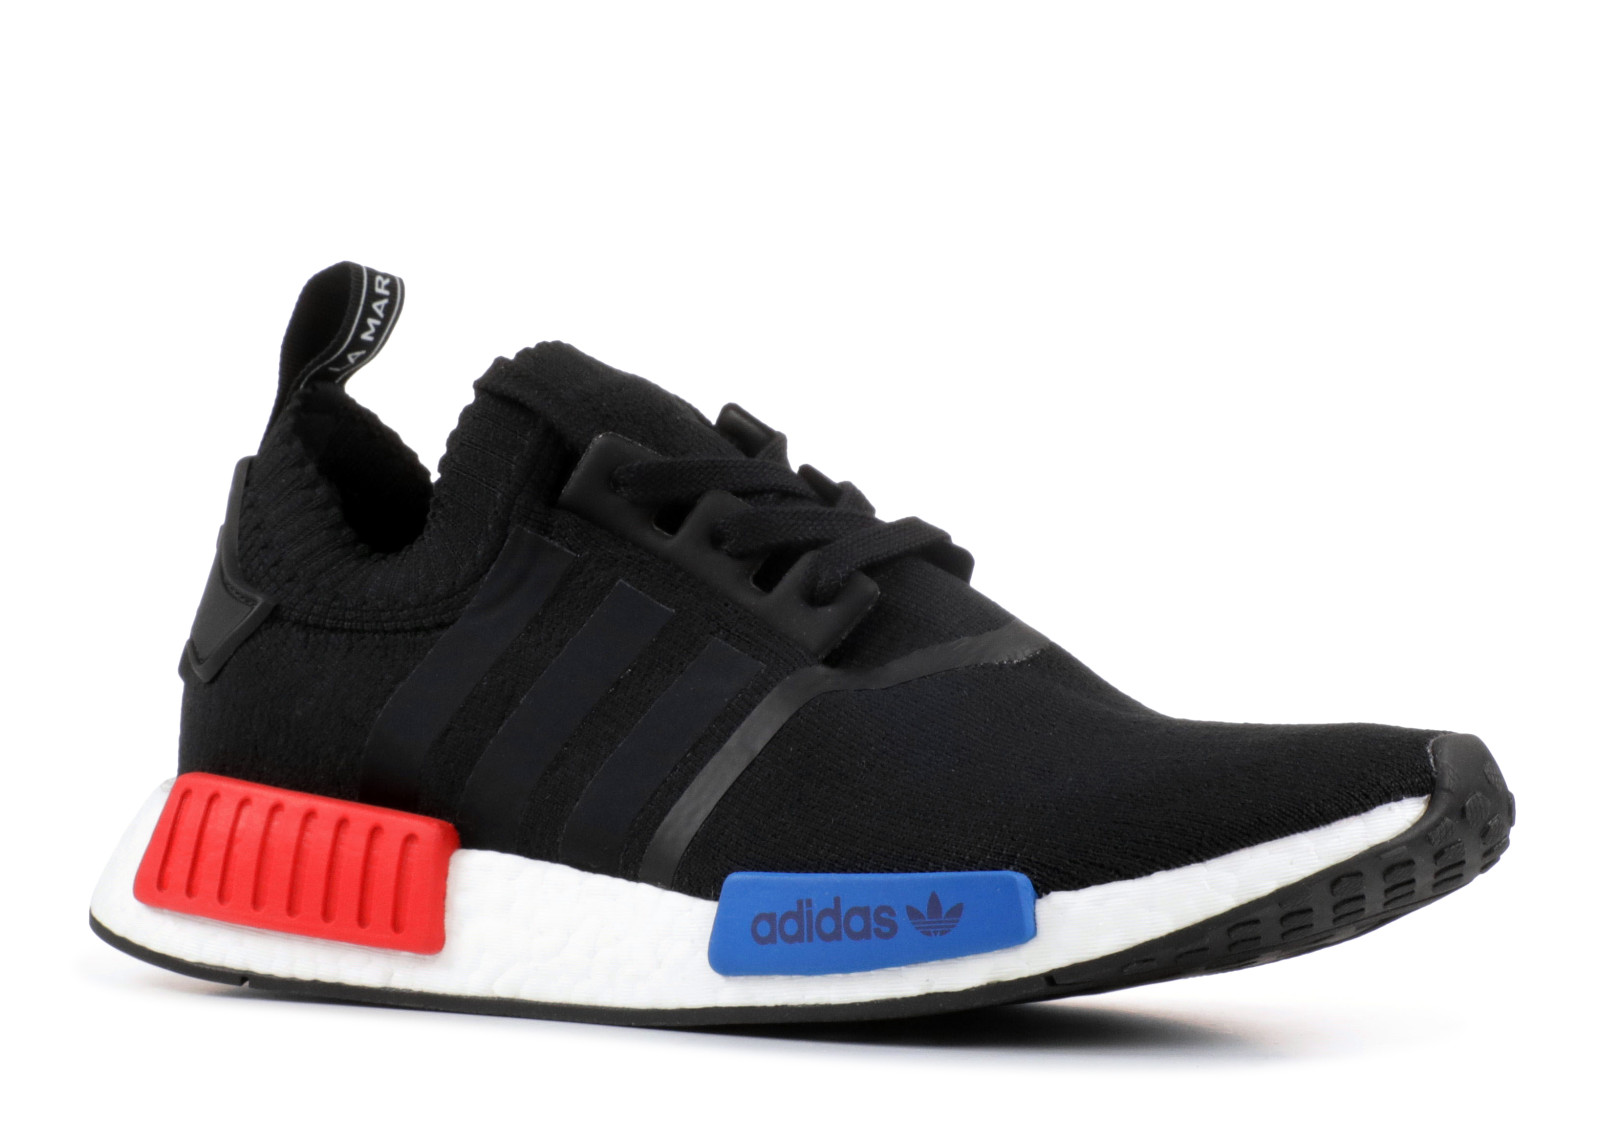 04fbc99059c1 Adidas NMD O.G. – SneakerView